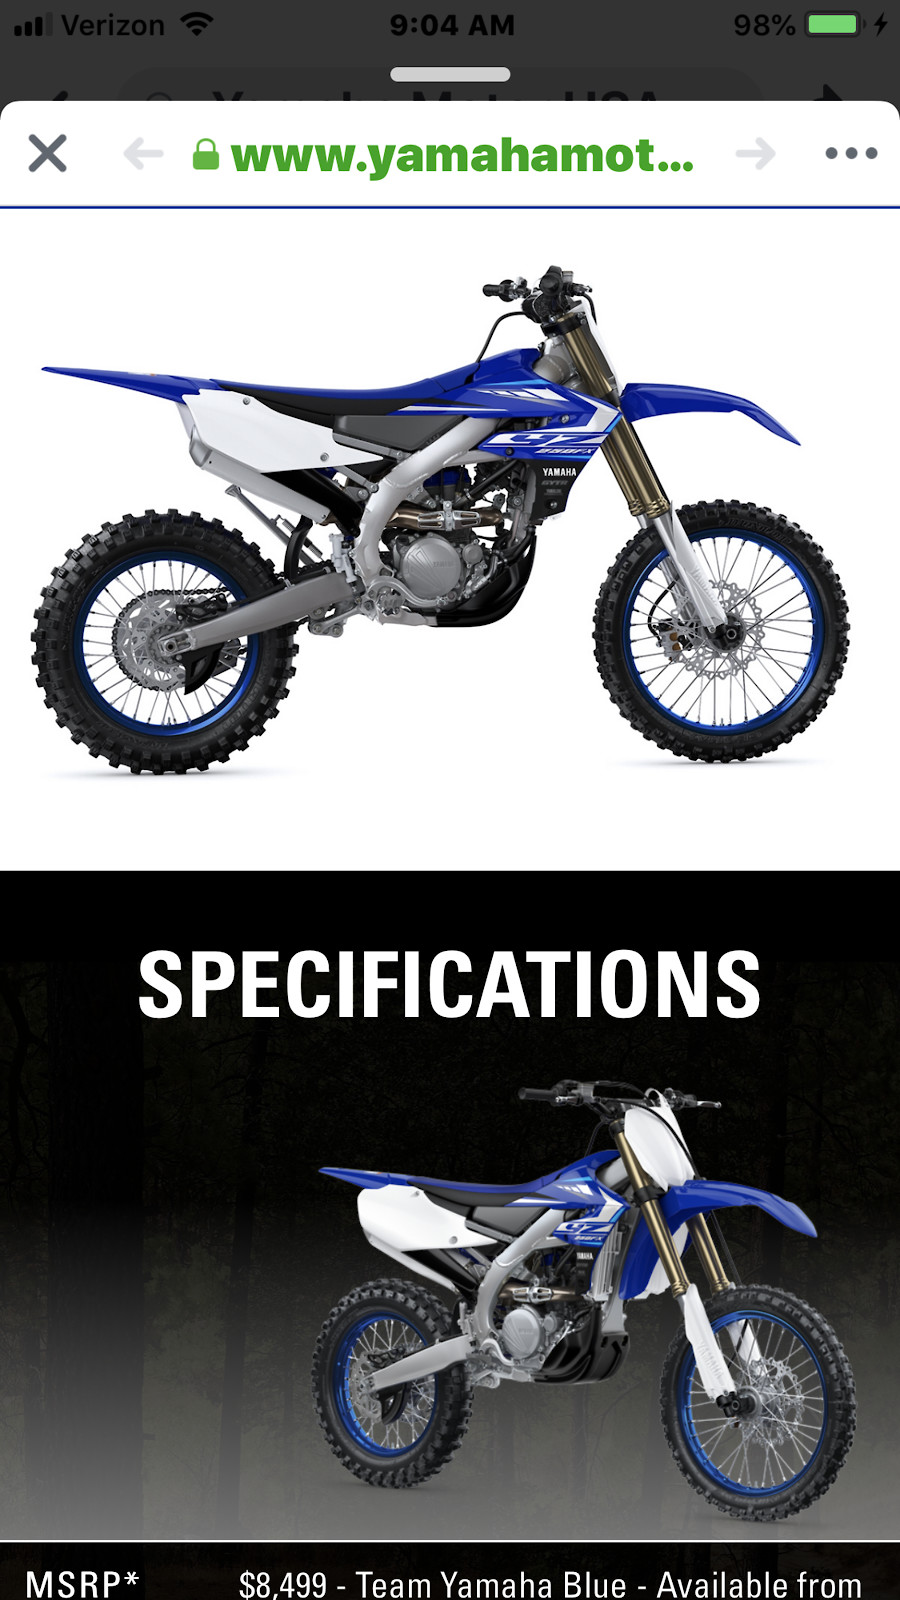 2020 YZ 250 FX - Moto-Related - Motocross Forums / Message